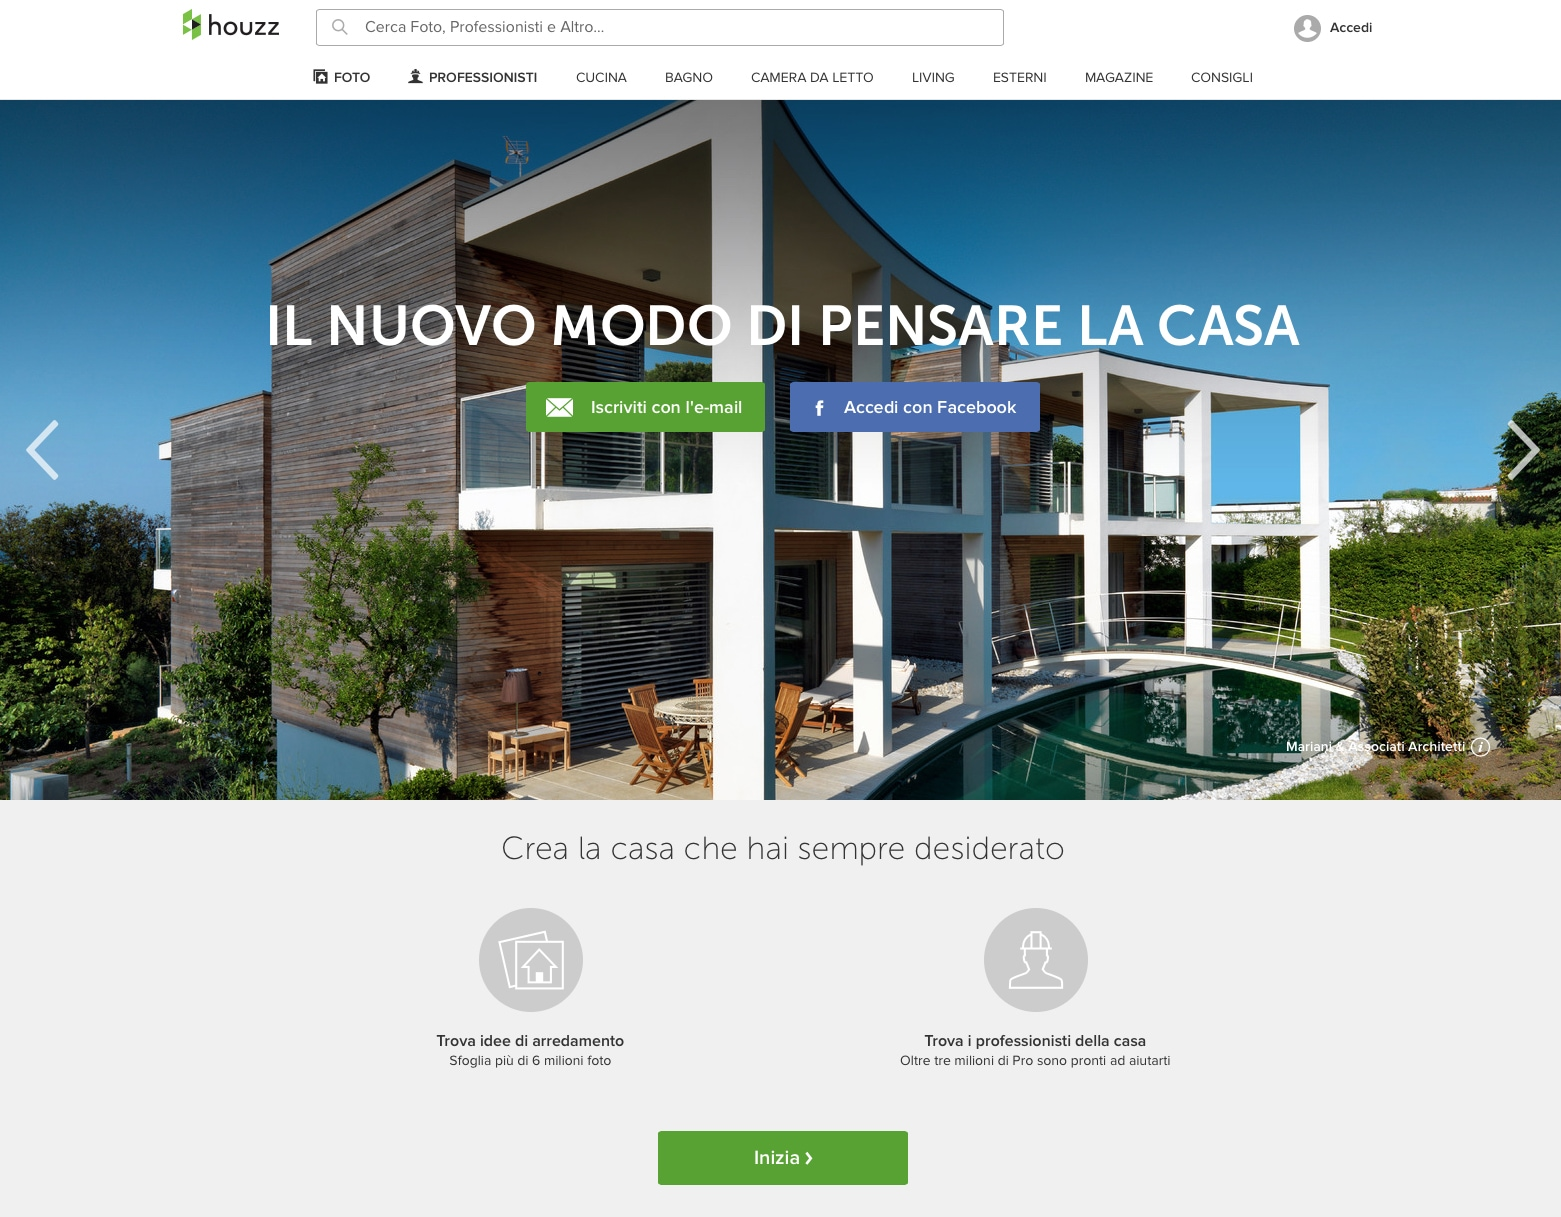 Houzz launches Italian site